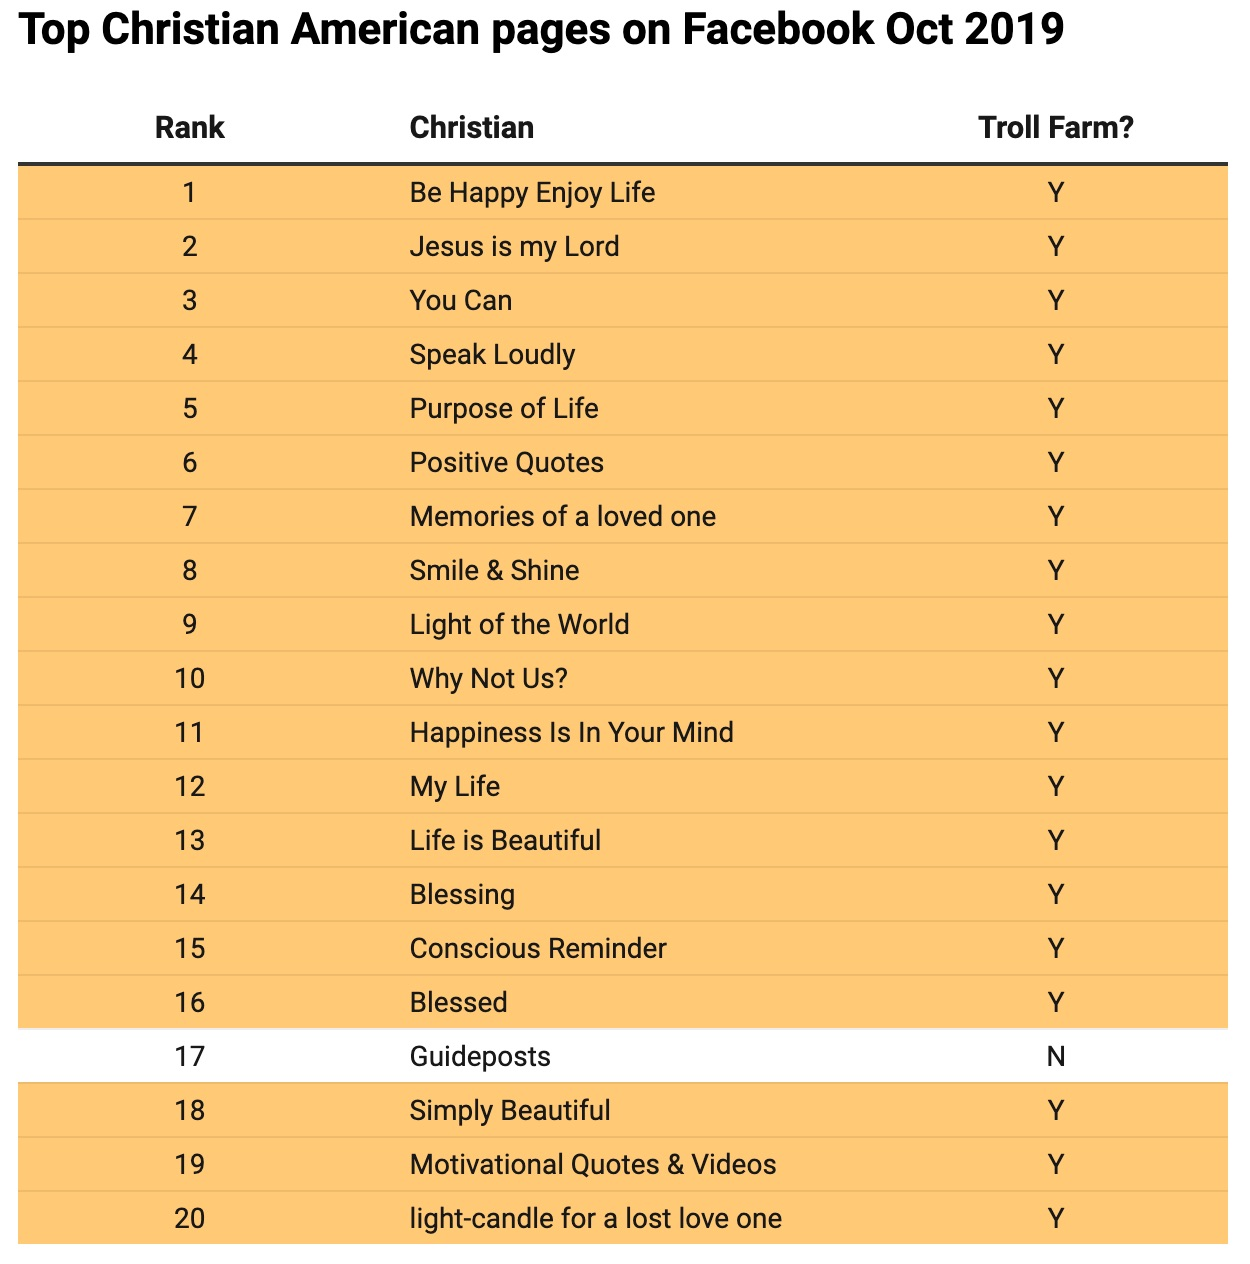 The Top 20 Christian Facebook pages were run by internet trolls in 2019